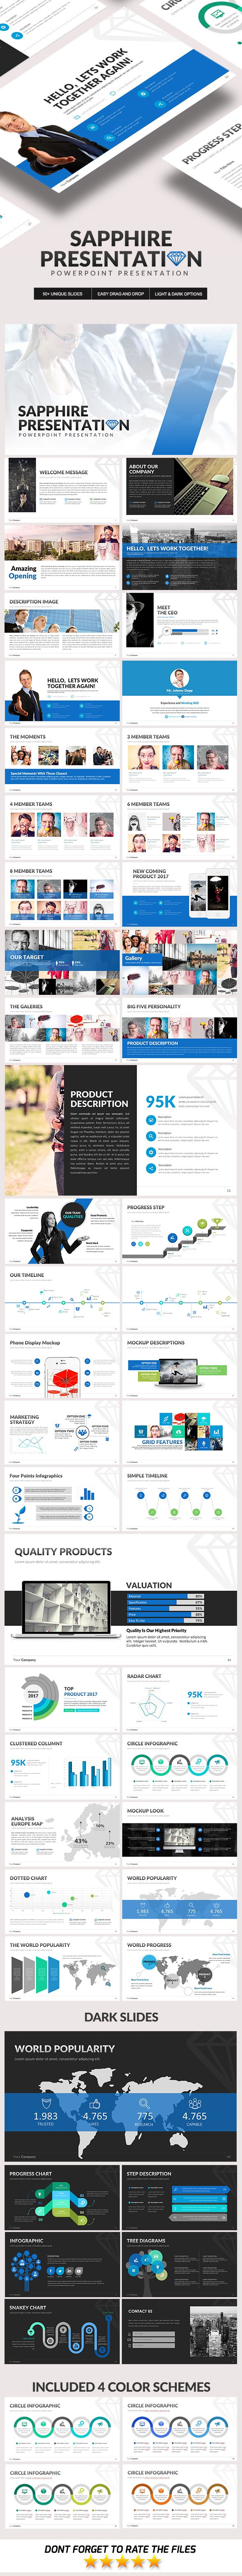 Beautiful 1 Page Resume Sample Thick 10 Envelope Template Flat 10 Label Template 100 Free Resume Builder Old 1099 Contract Template Bright13 Birthday Invitation Templates 1462 Best Images About Presentation Templates On Pinterest ..